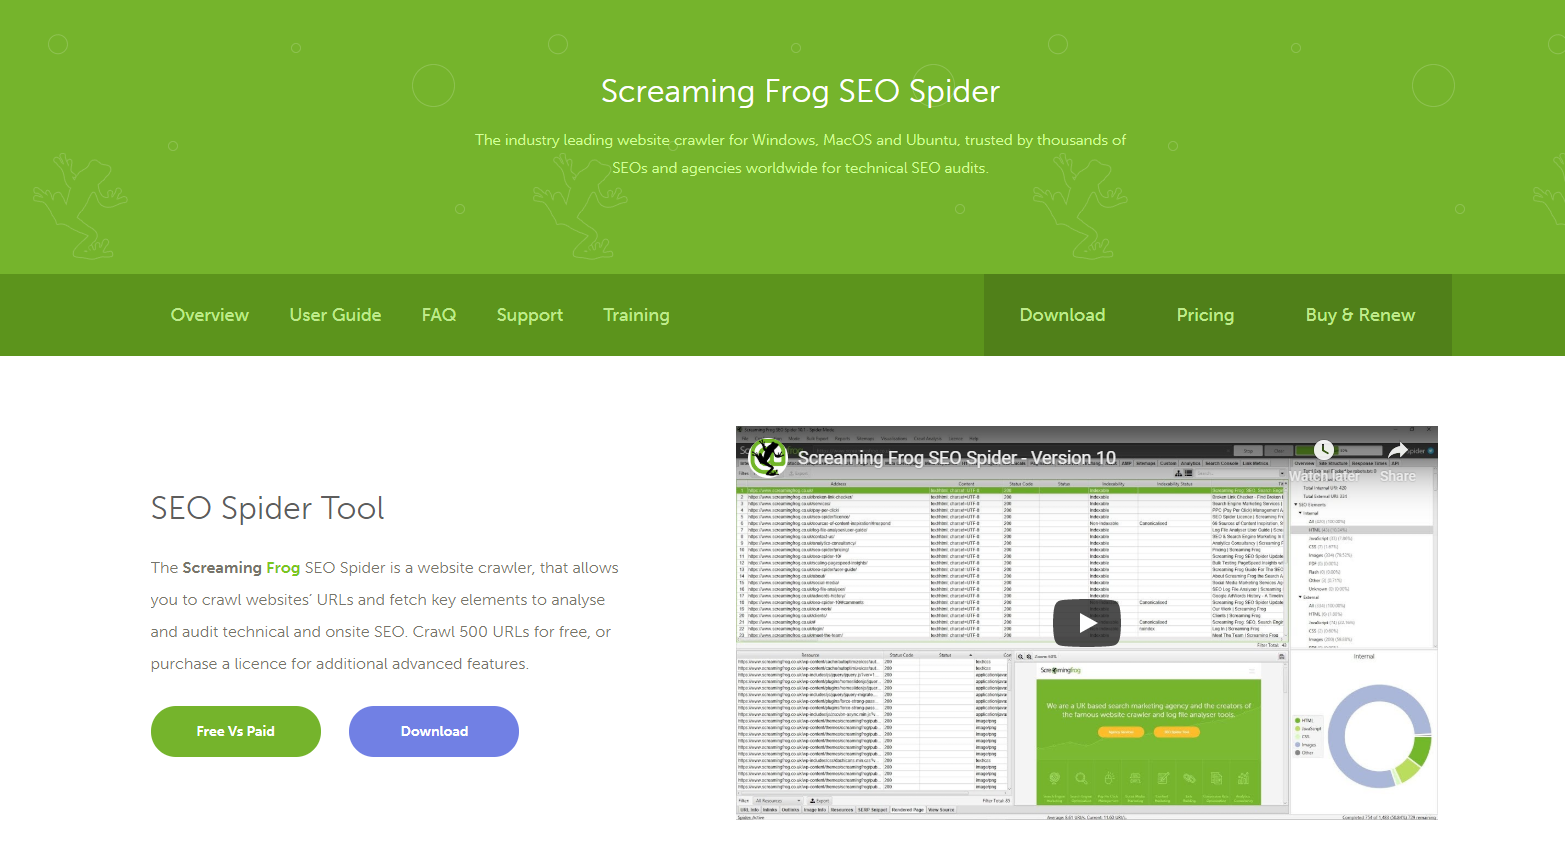 seo spider tool